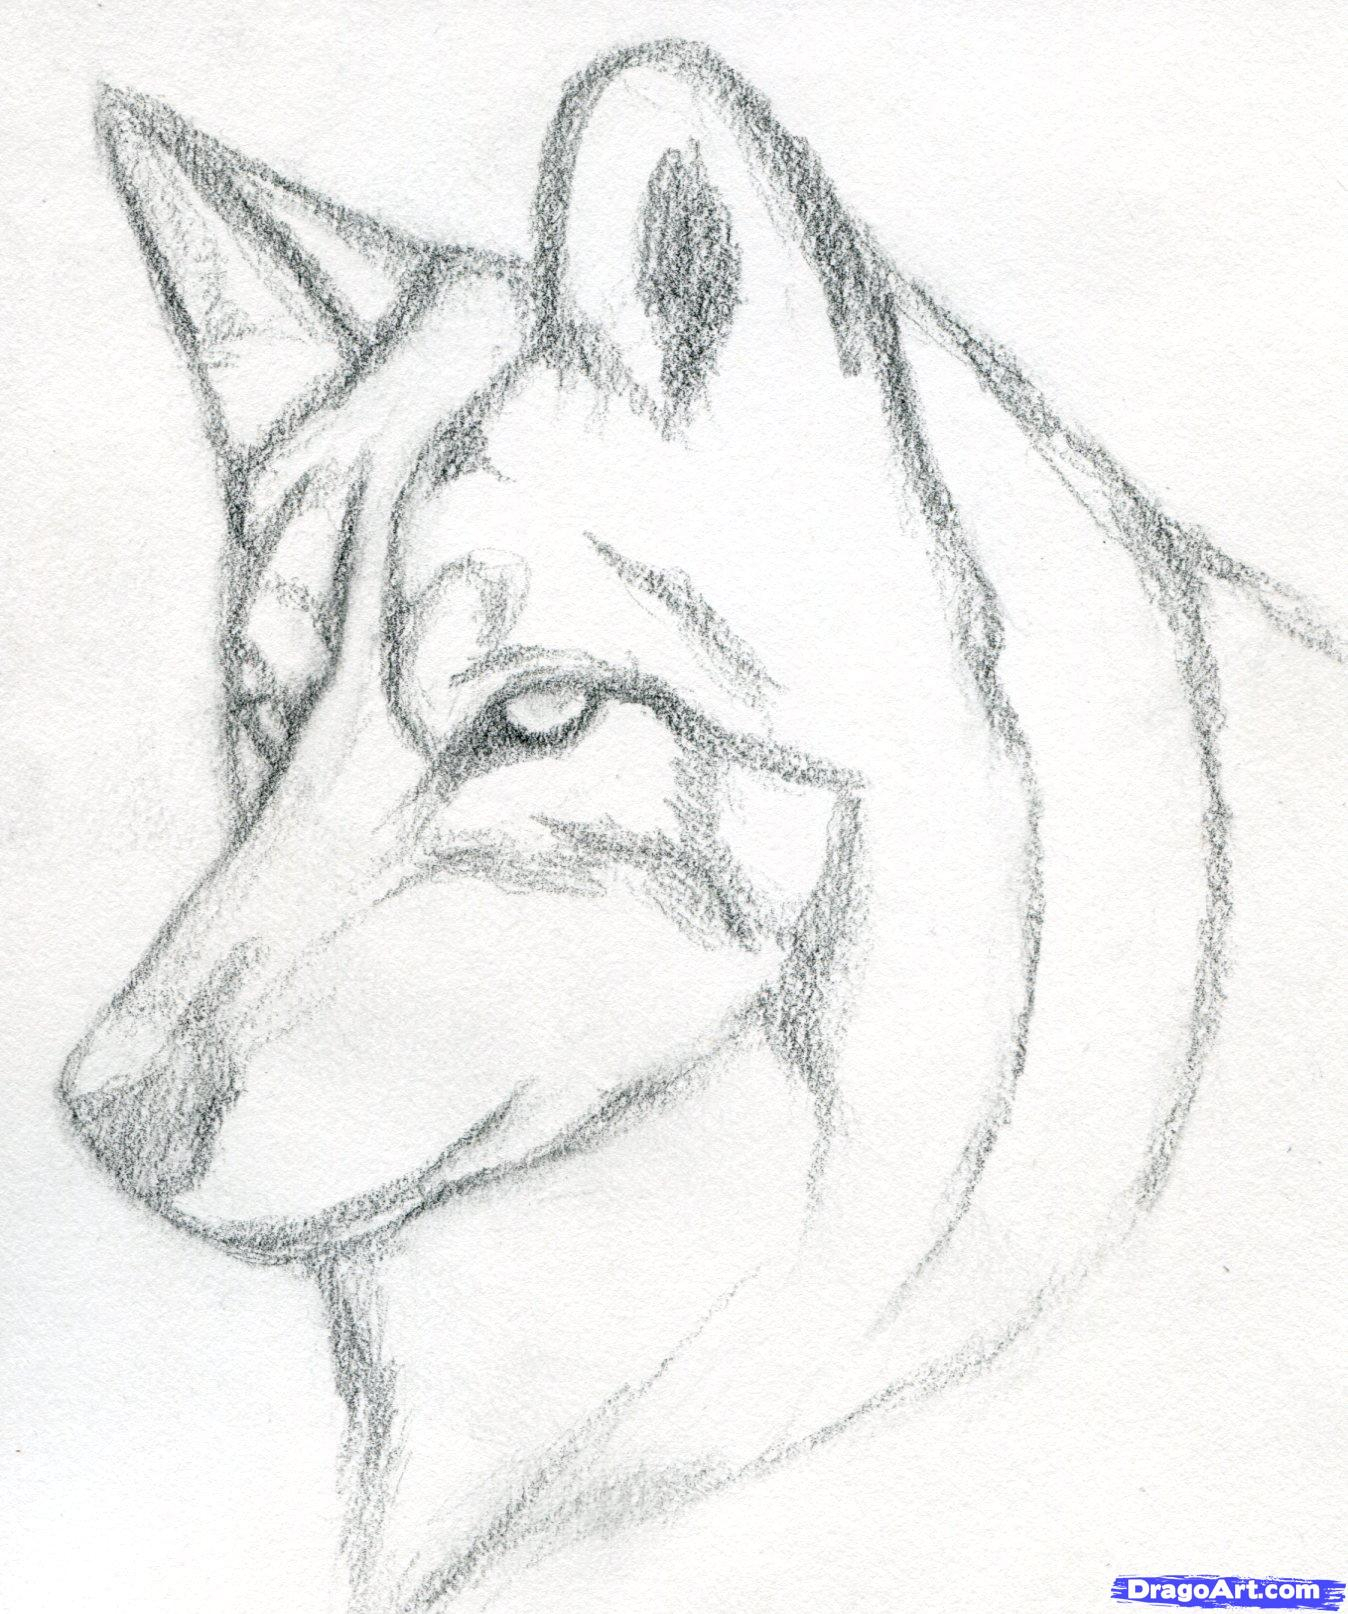 1348x1614 Drawing A Wolf Head How To Draw An Easy Realistic Wolf Head